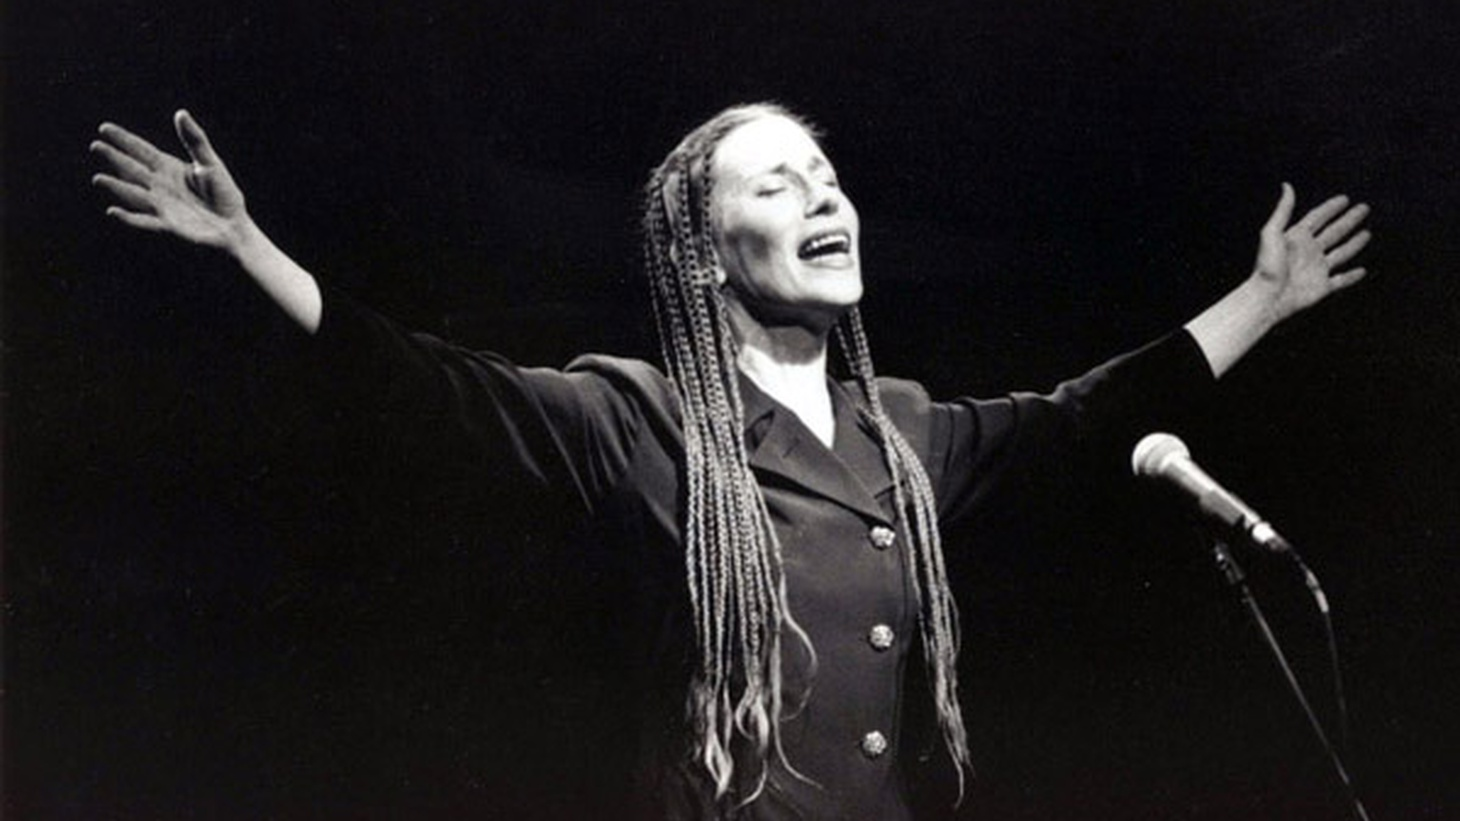 An interview with composer and singer Meredith Monk, with clips of music from her entire career.